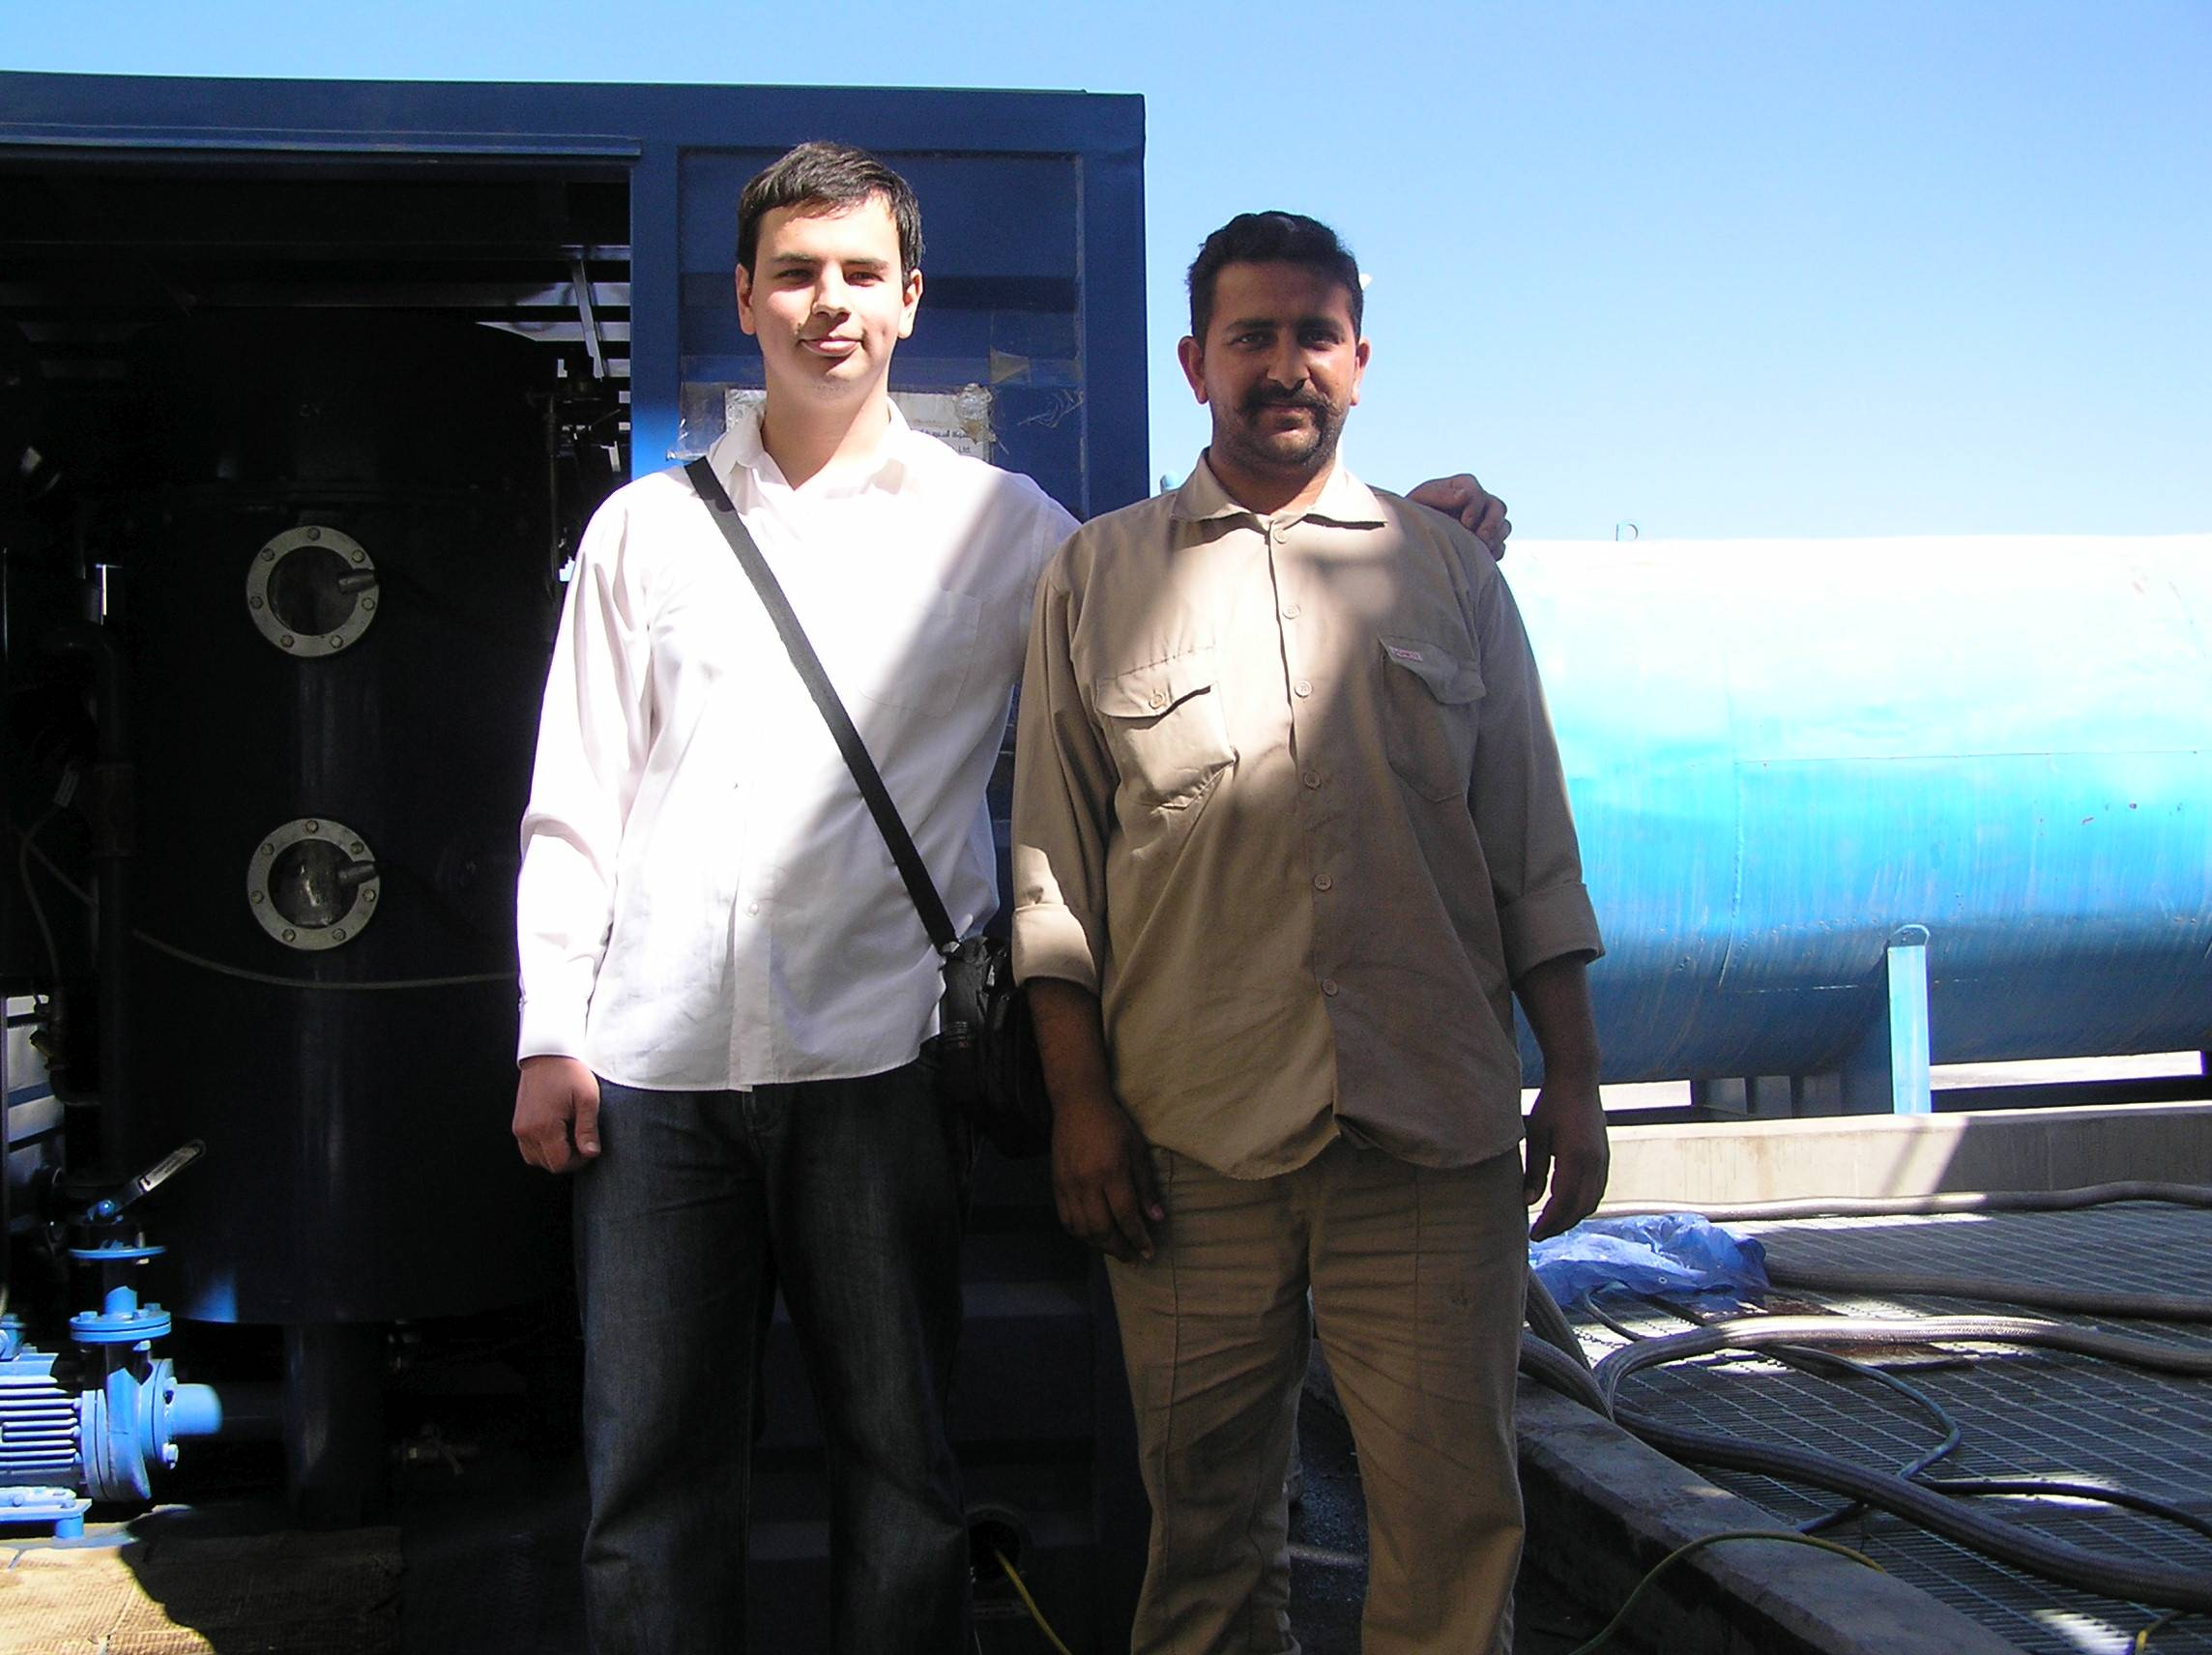 GlobeCore's engineer with a collegue from Saudi Arabia after successful start of equipment